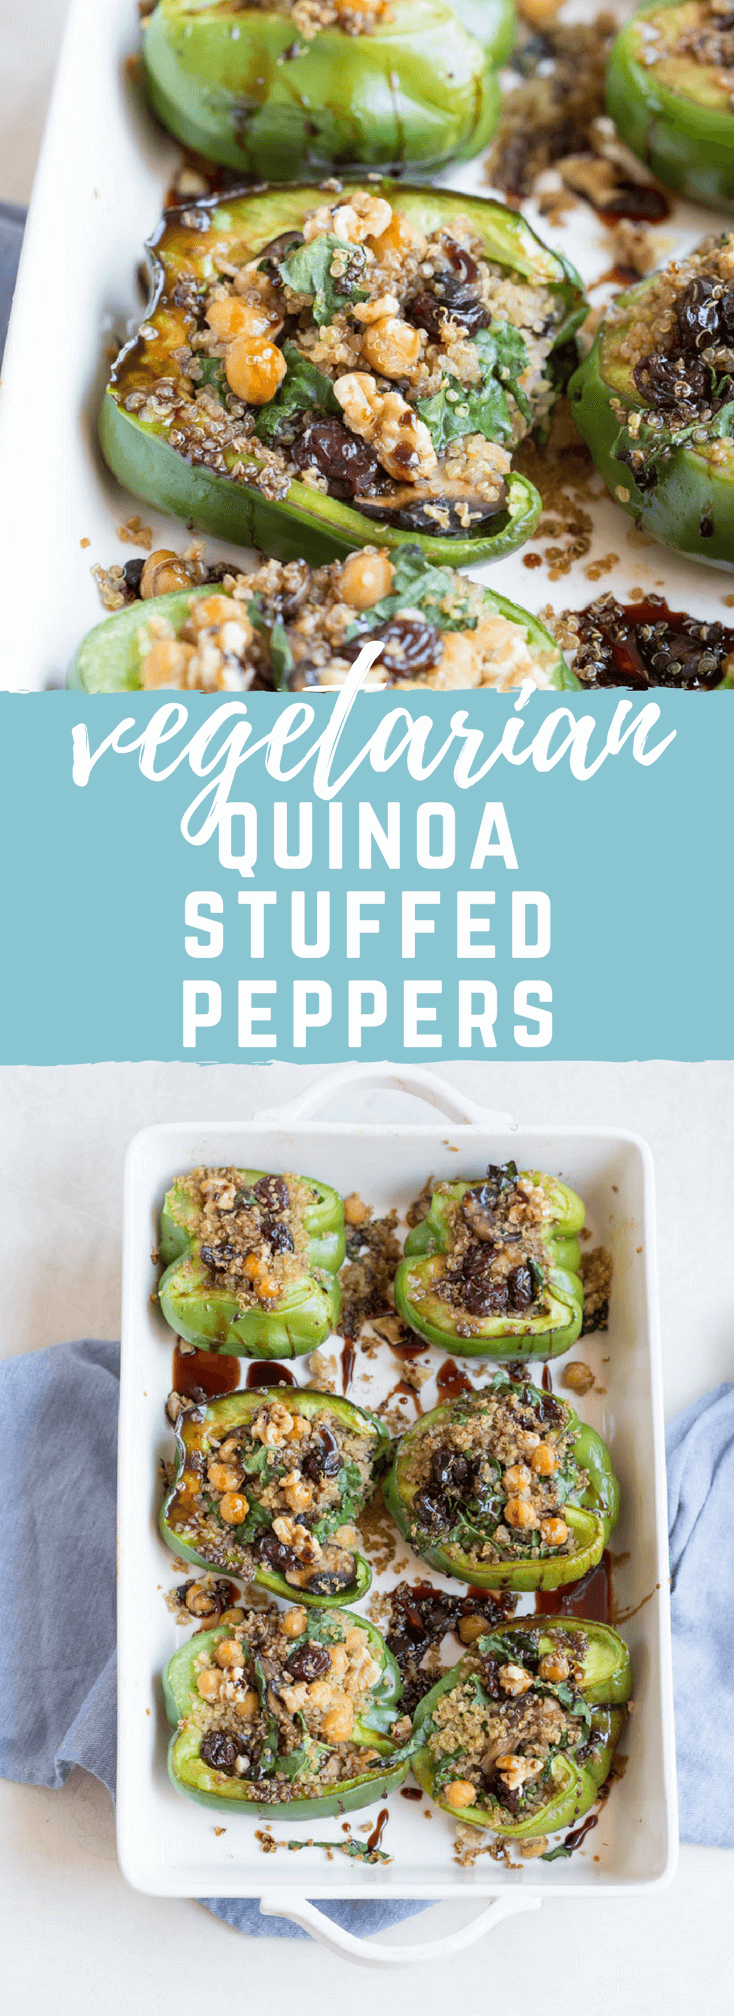 Vegetarian Quinoa Stuffed Peppers filled with quinoa, mushrooms, kale, dried tart cherries with walnuts and tart cherry reduction. A healthy veggie meal.